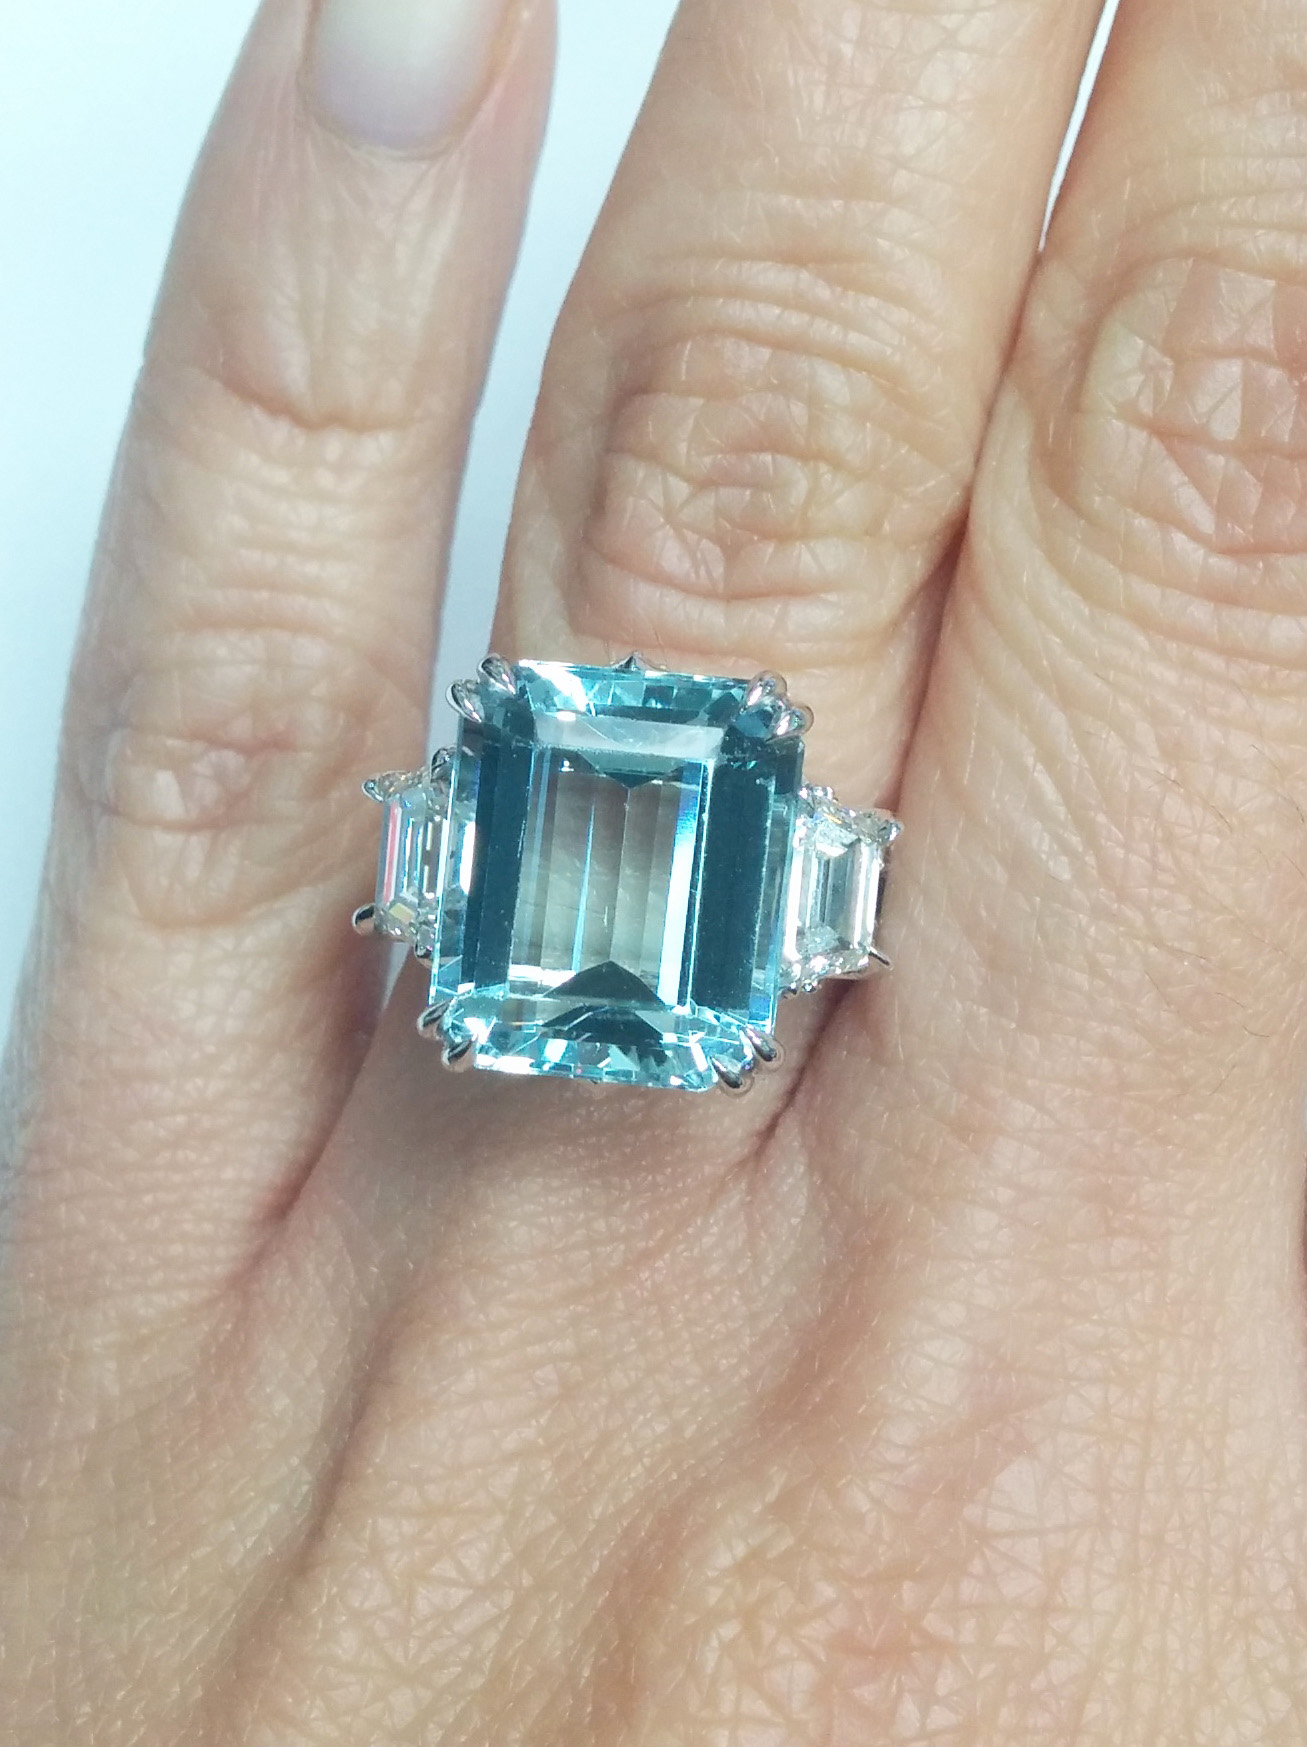 european engagement ring 730 ctw large emerald cut